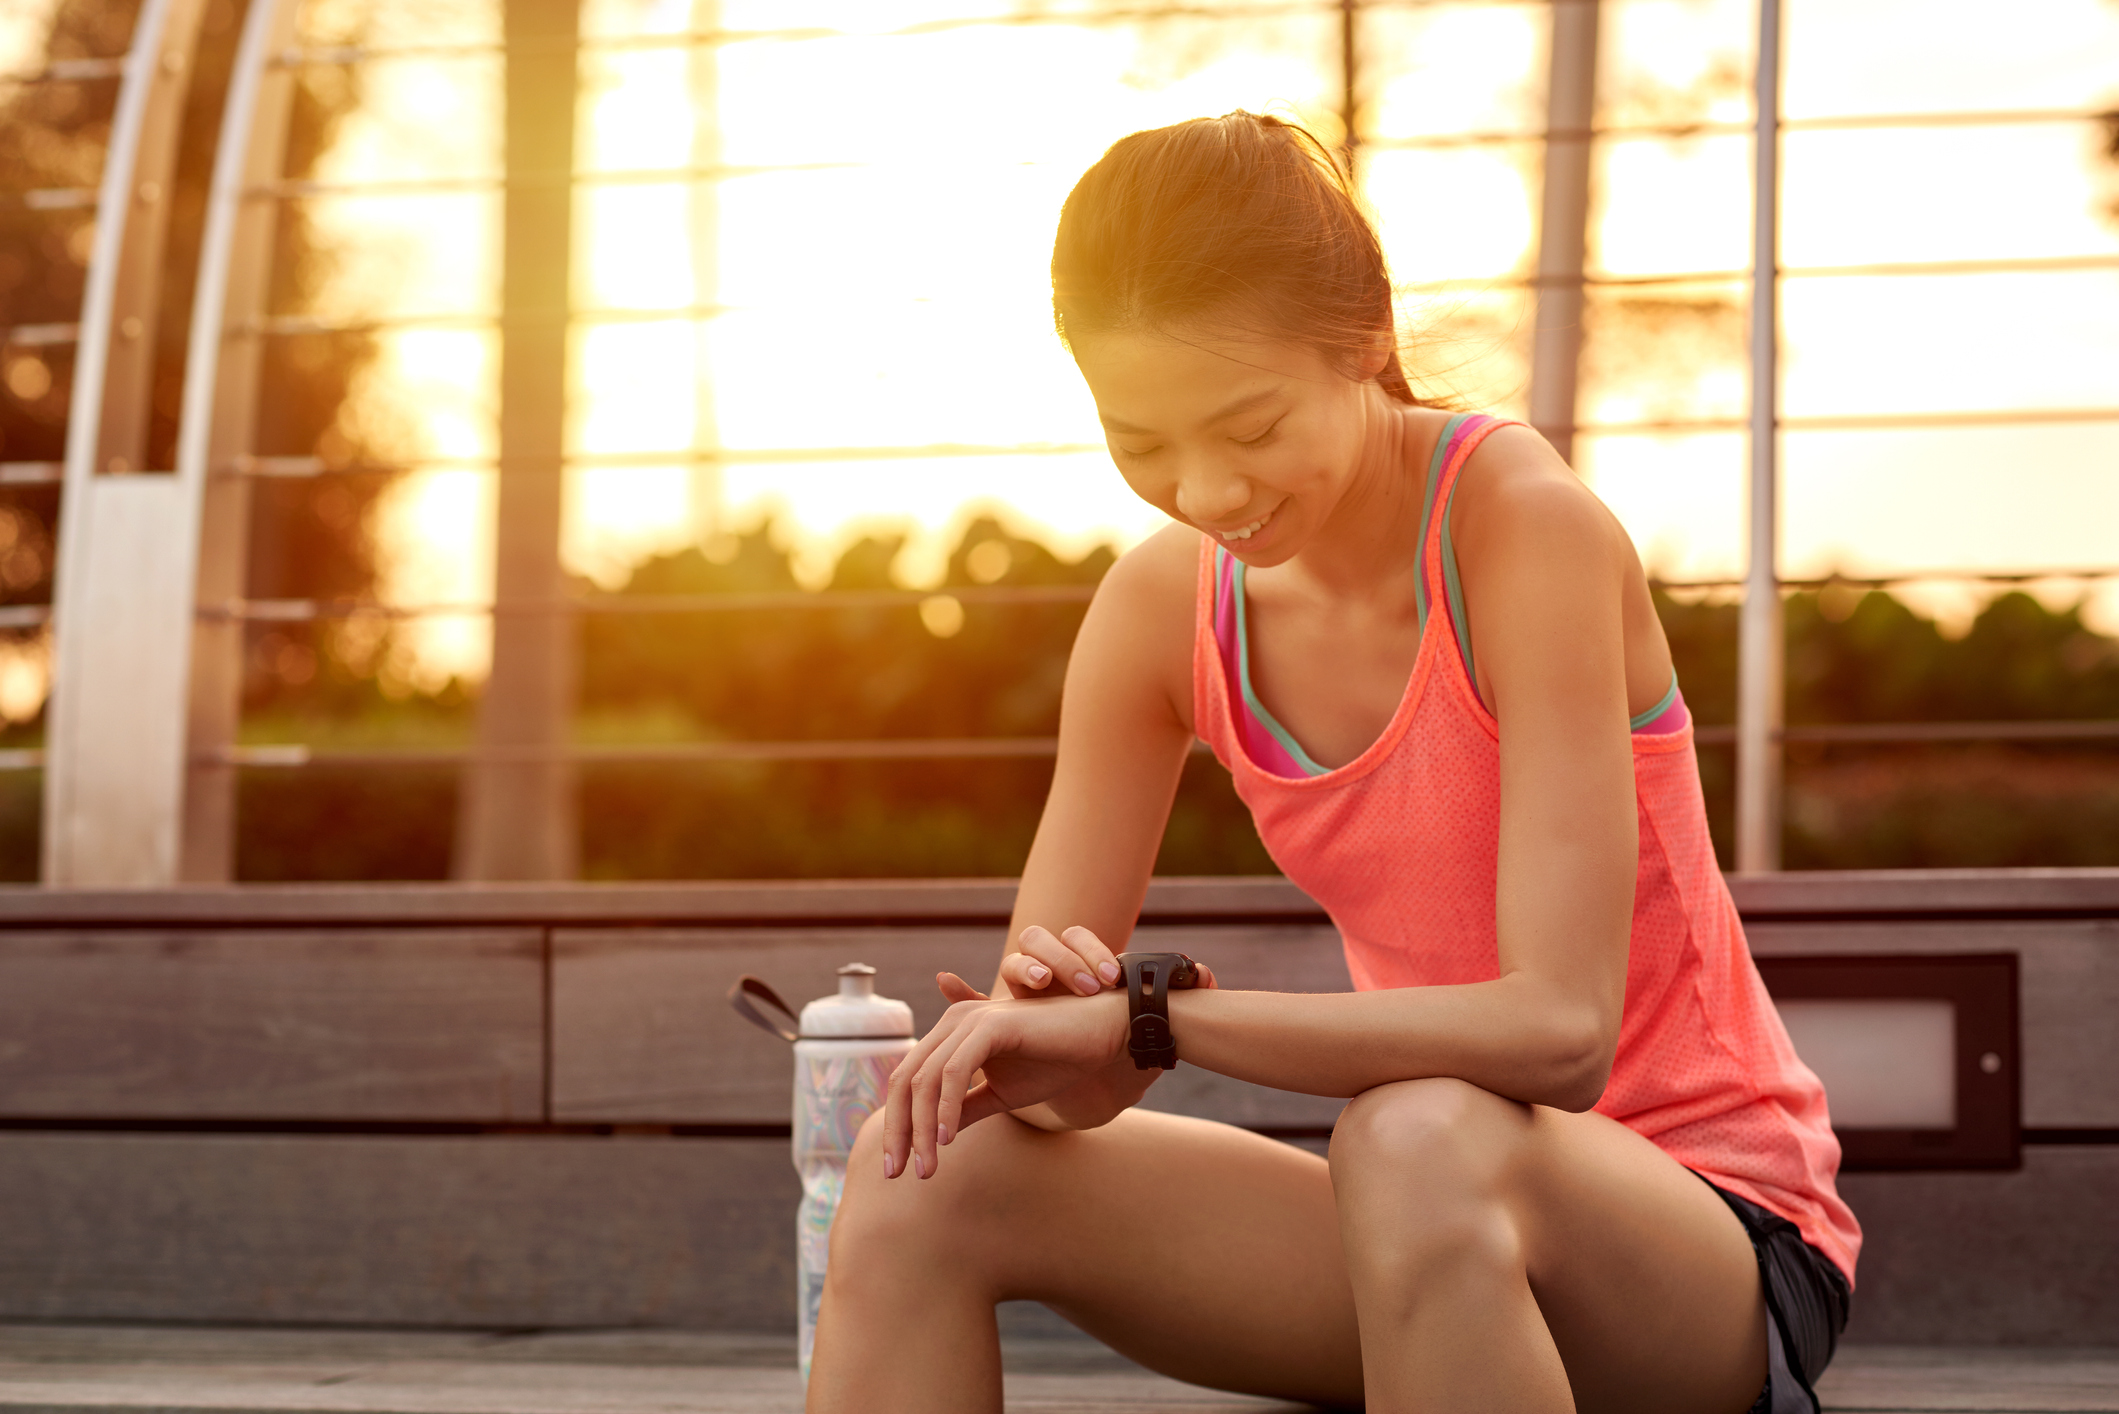 stock photo of woman in exercise attire checking her watch after a run